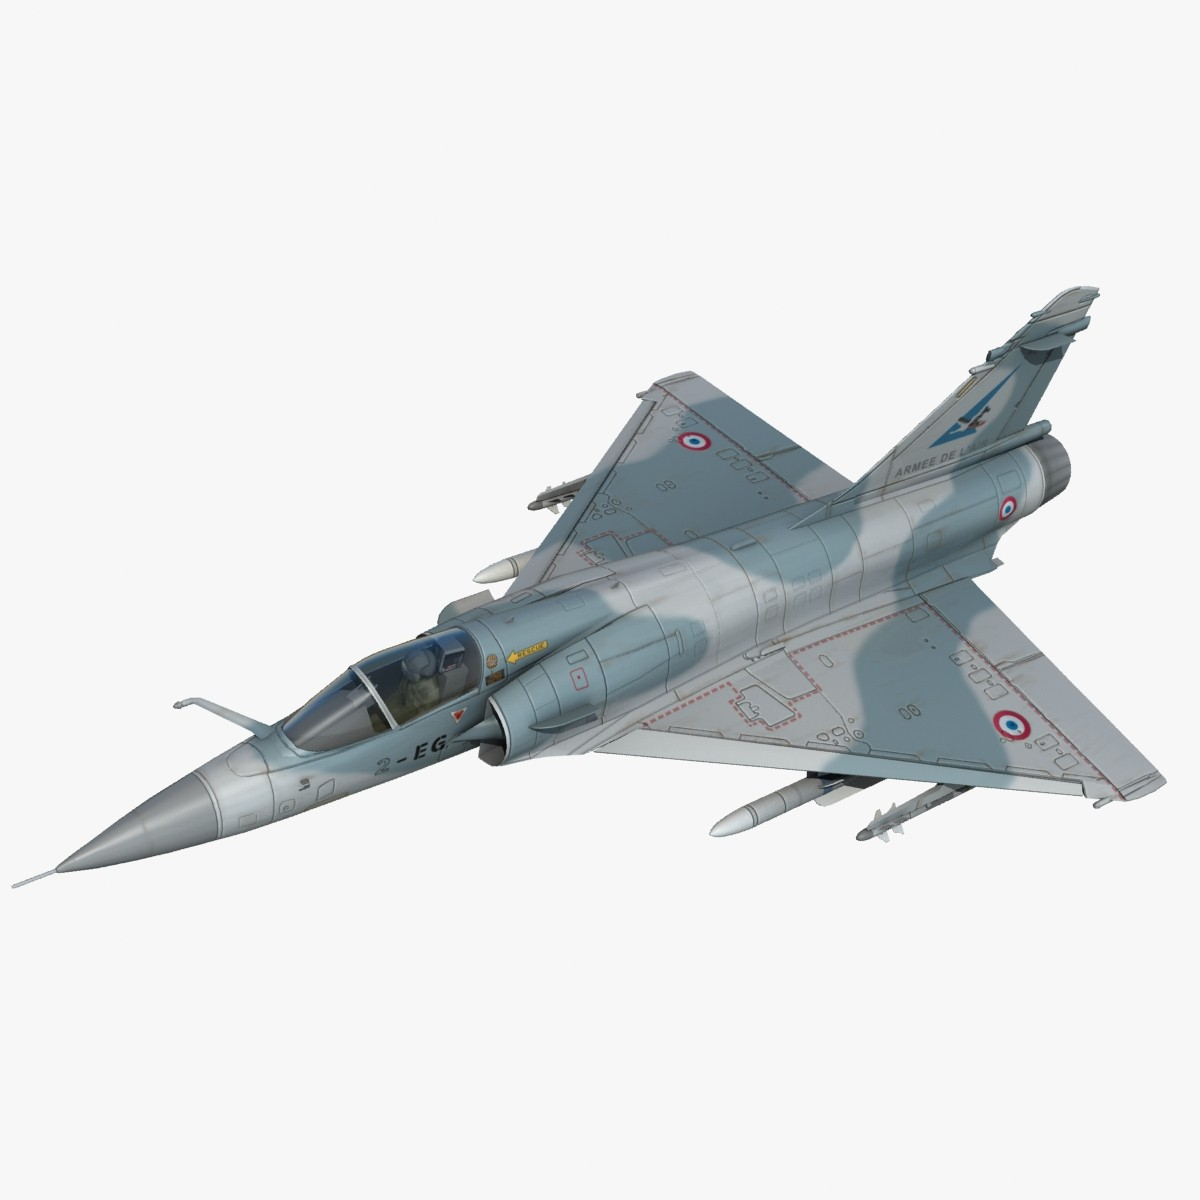 mirage 2000c fighter jet 3d max